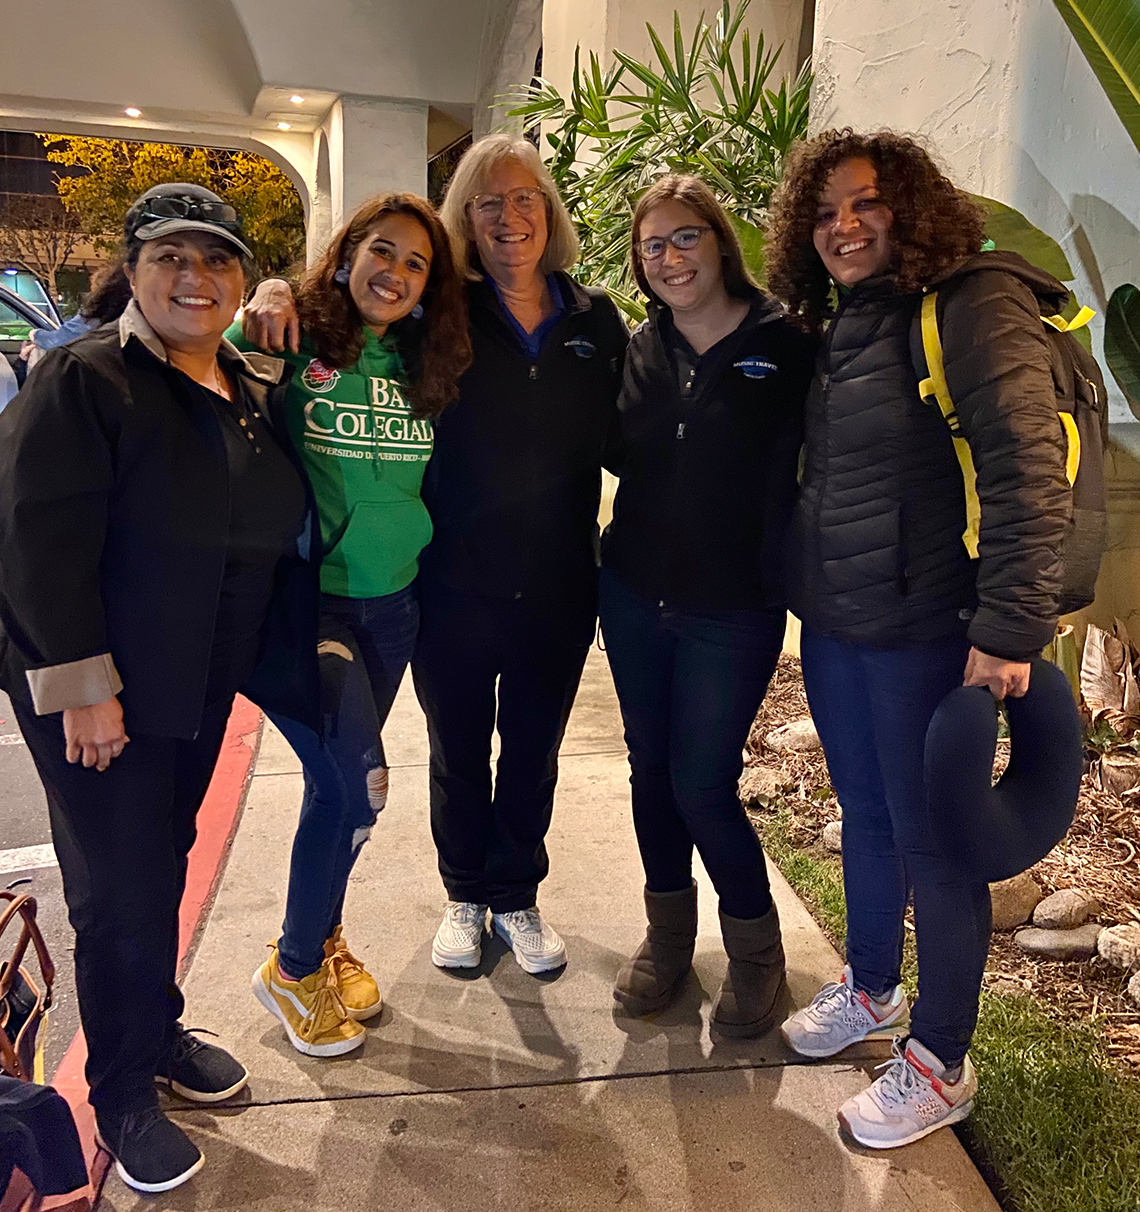 From left to right: MTC Tour Director Sylvia Duplantier, UPR Drum Major Rebeca Santiago, MTC TD Sue Guindon, MTC TD Vicky Wielosinski, and UPR Staff Member Shara Vargas Jimenez at the Pasadena Tournament of Roses Parade with the Centennial Collegiate Band of Mayagüez University, the first Puerto Rican University Marching Band to be a part of the parade!